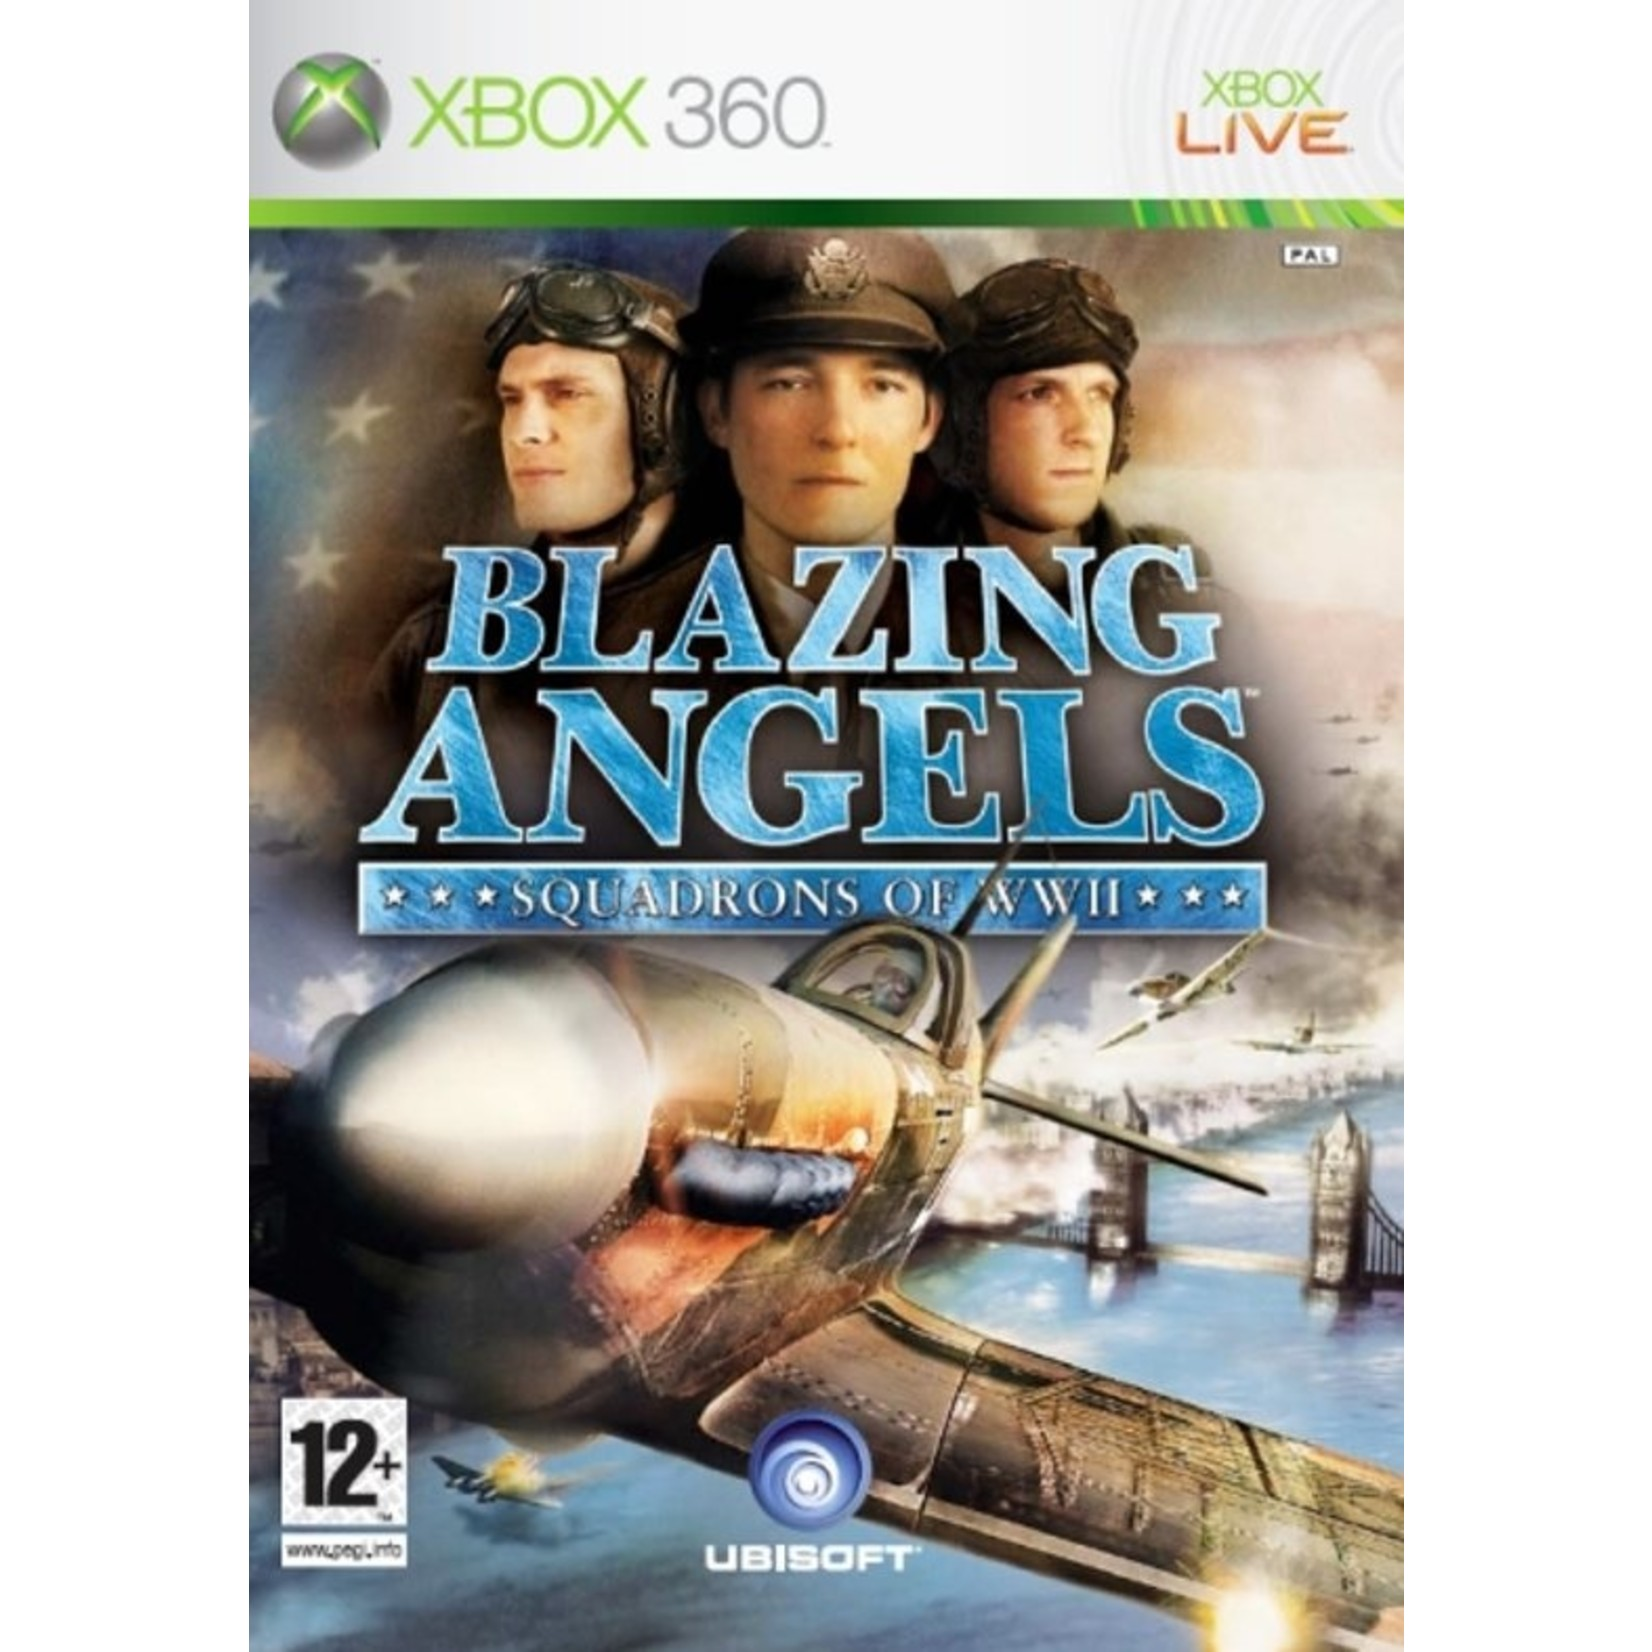 Blazing Angels-Squadrons Of WWII